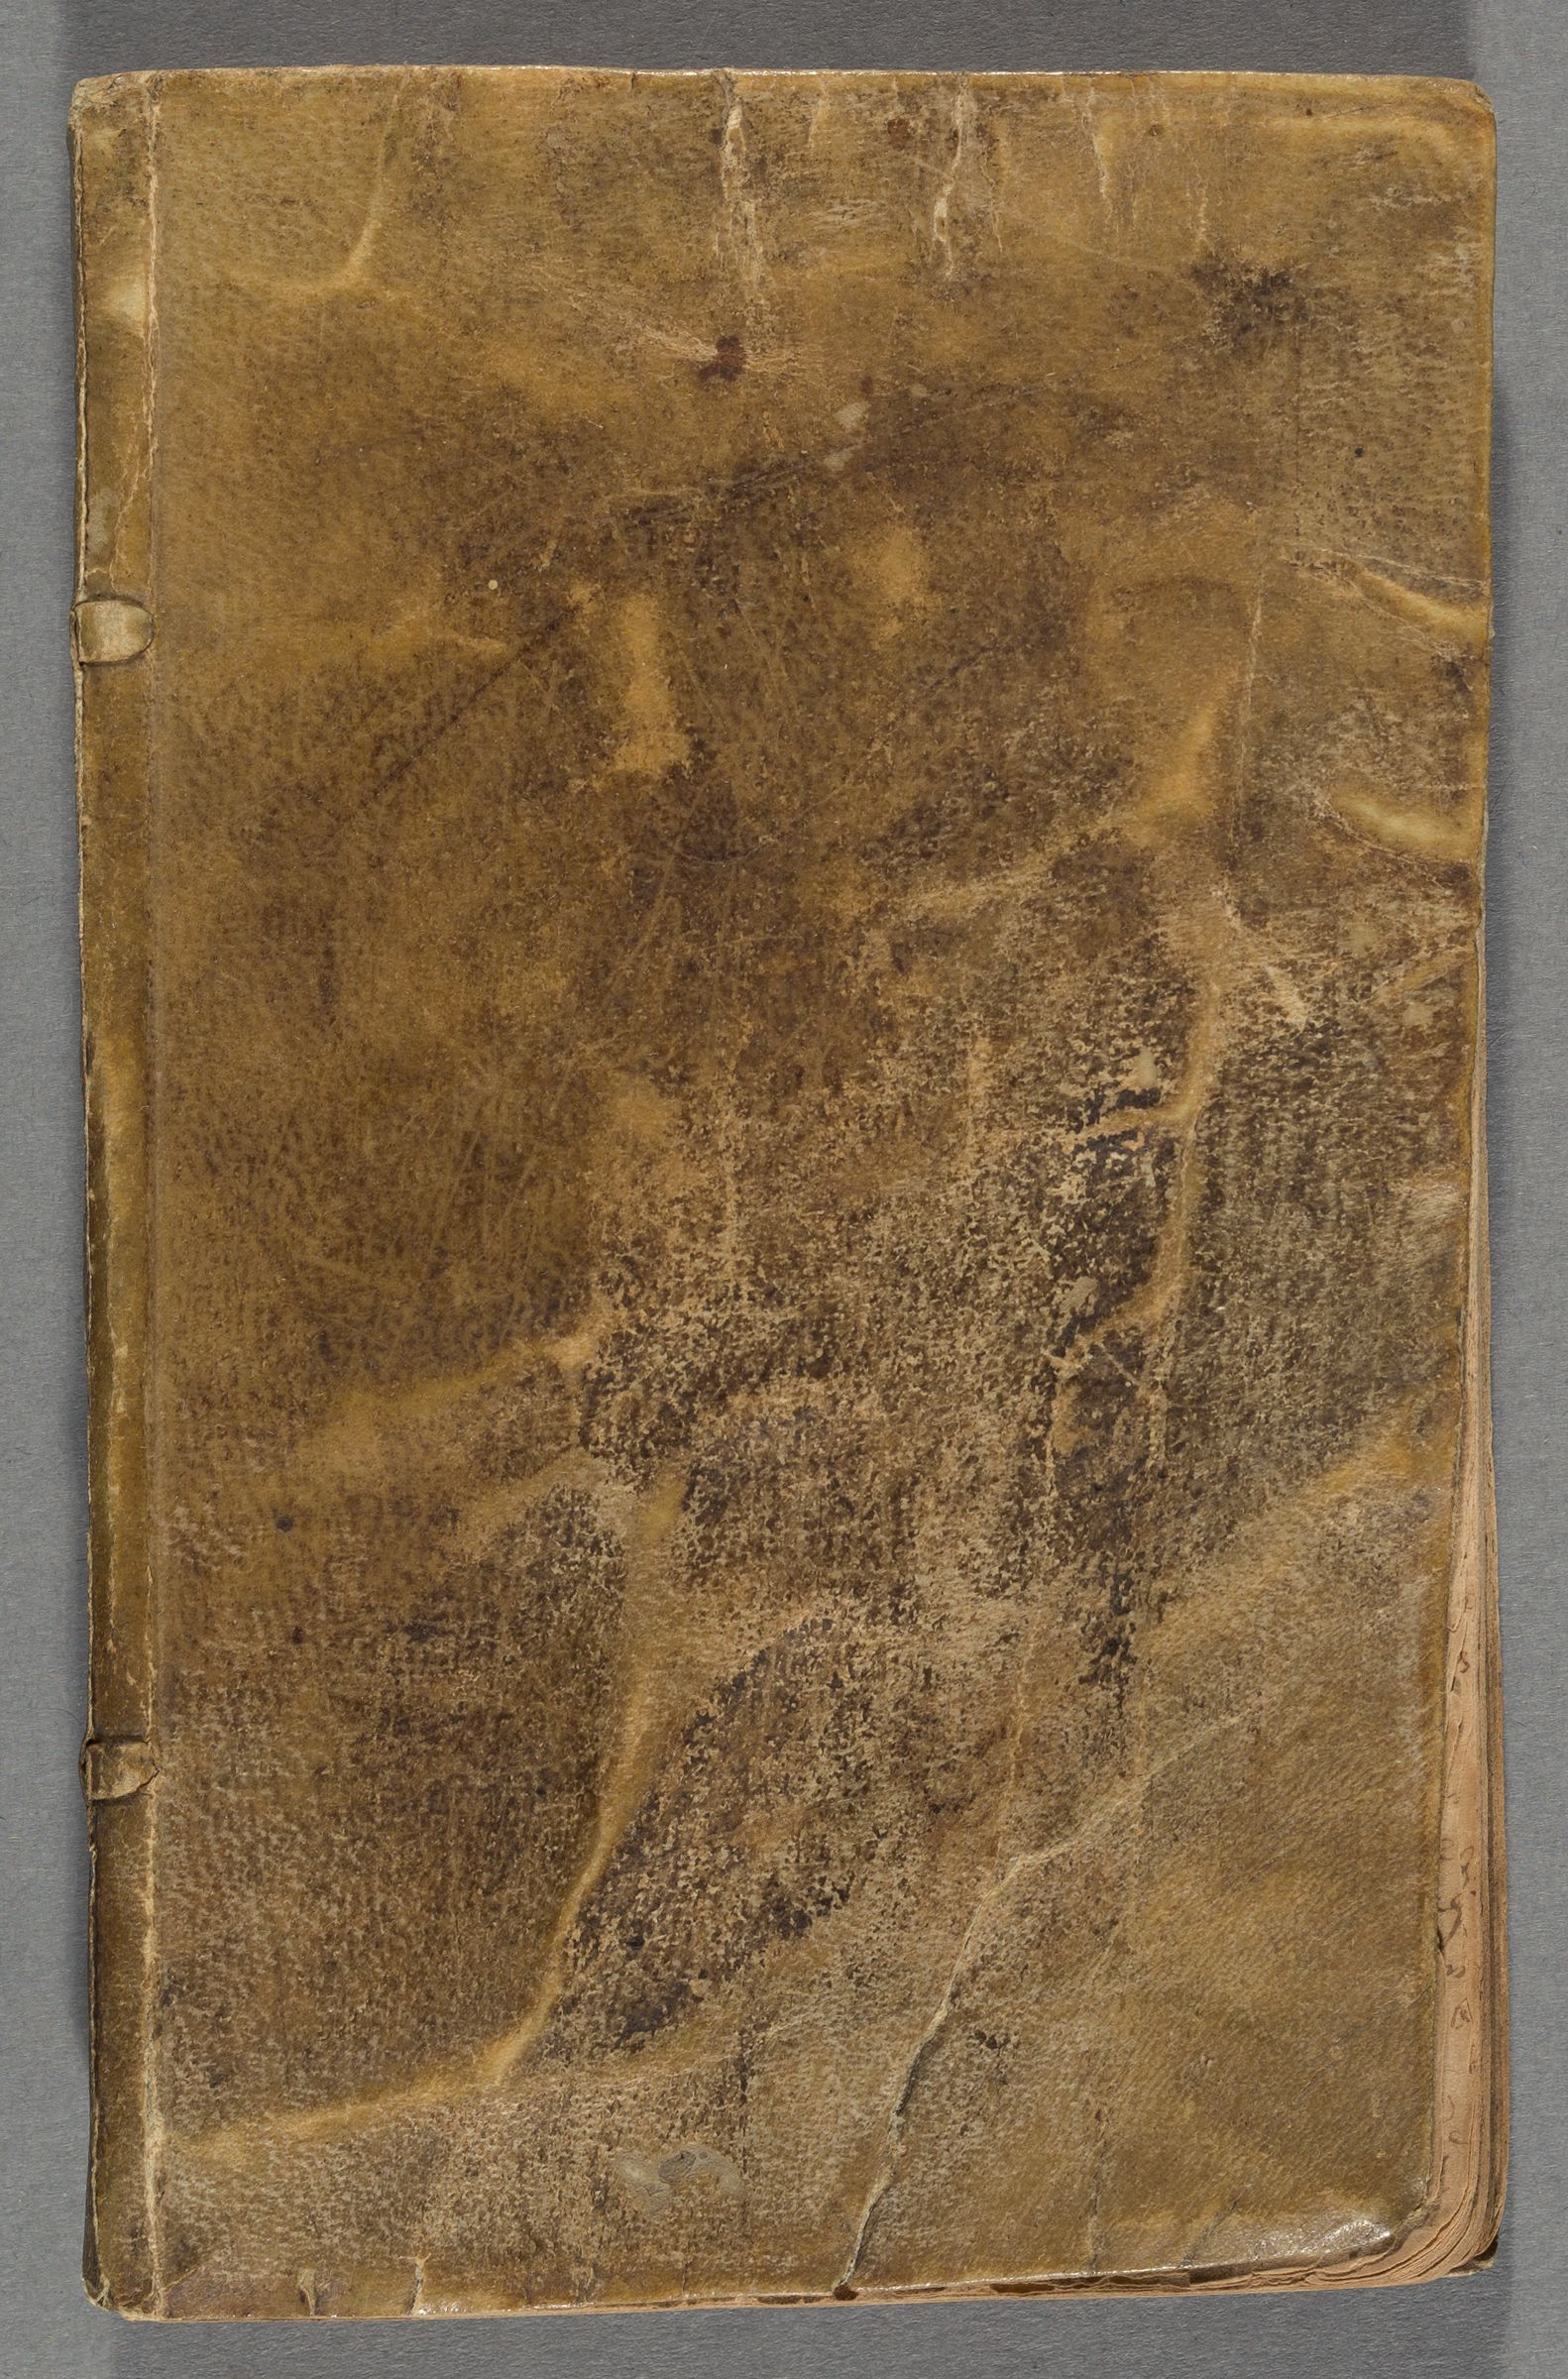 Student notebook of John Tufts, 1705